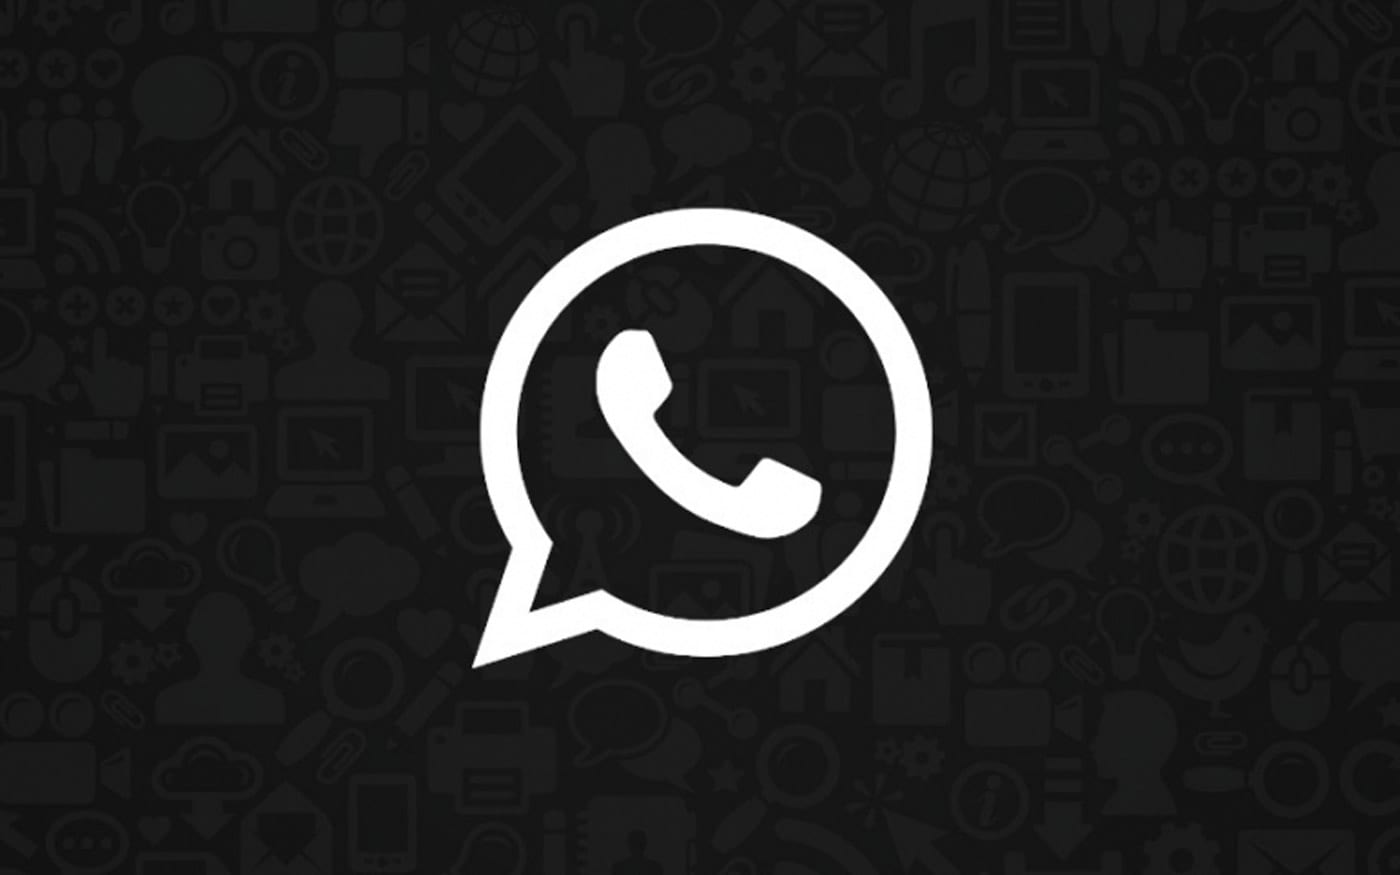 WhatsApp: modo escuro (dark mode ou night mode)